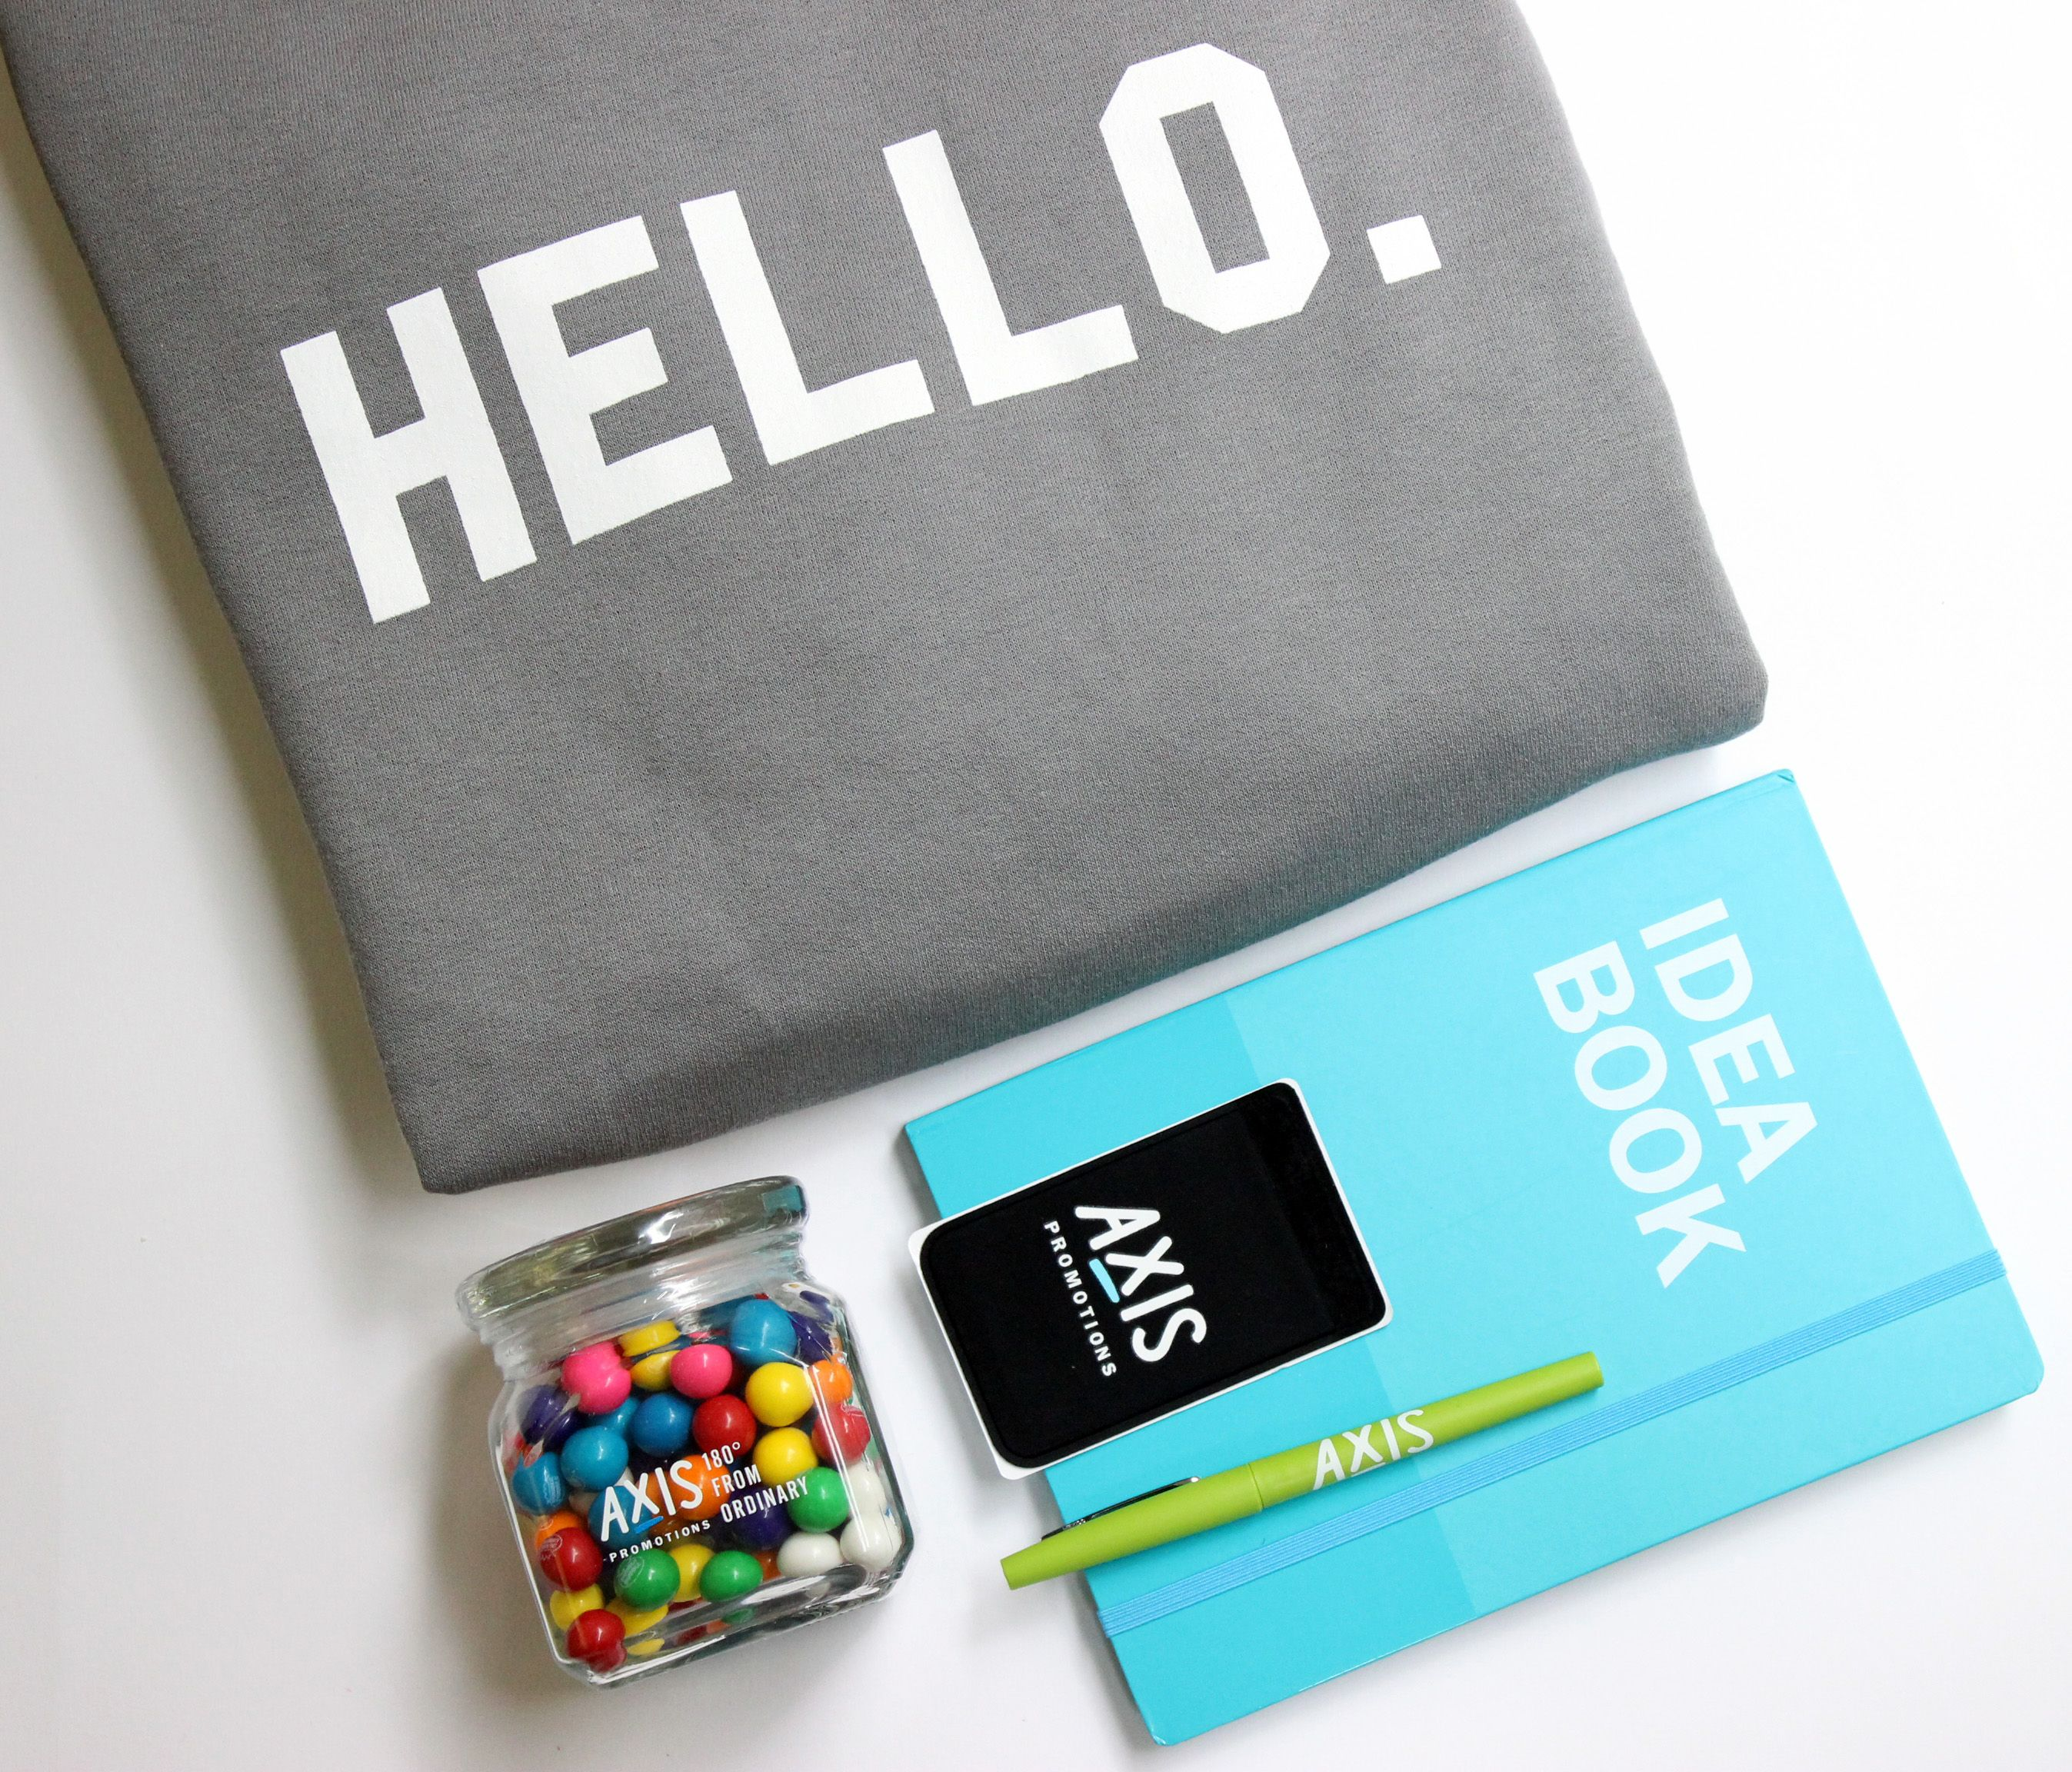 aaed1f196a8b Our welcome kit for new employees! #welcomekit #newhire #officeinspo ...